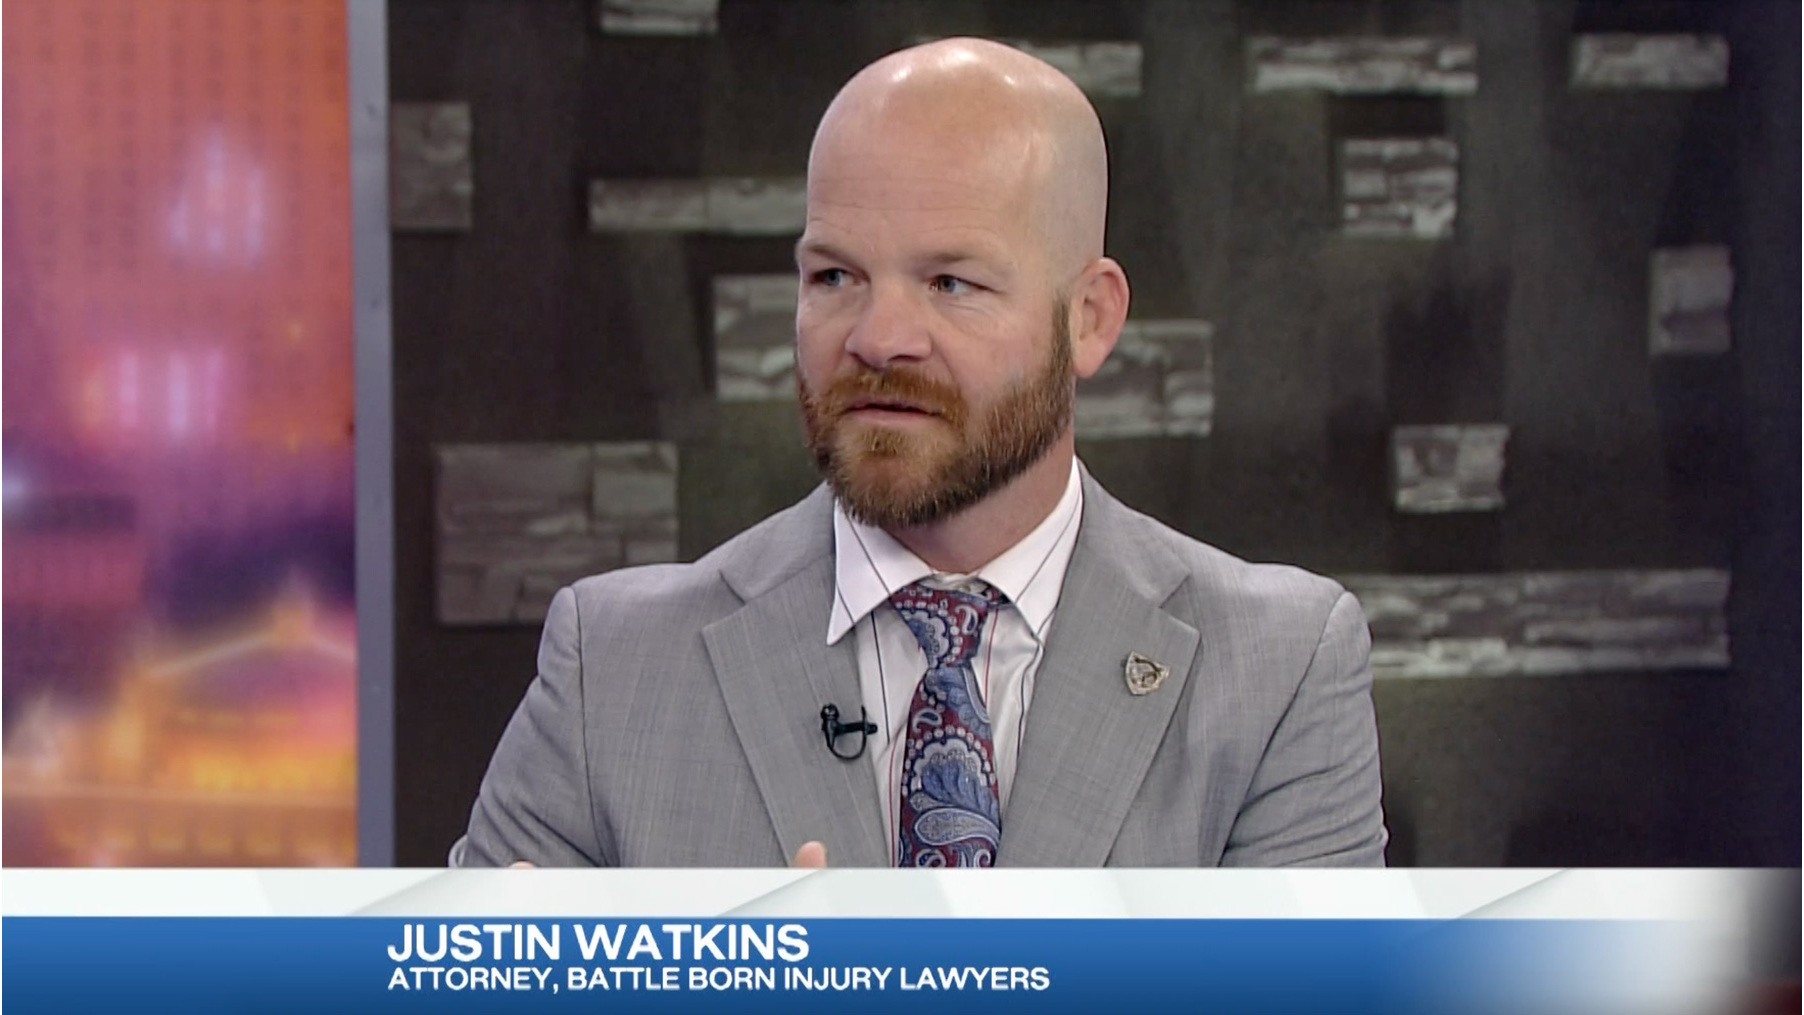 Your rights when detaining criminals with Battle Born Injury Lawyers